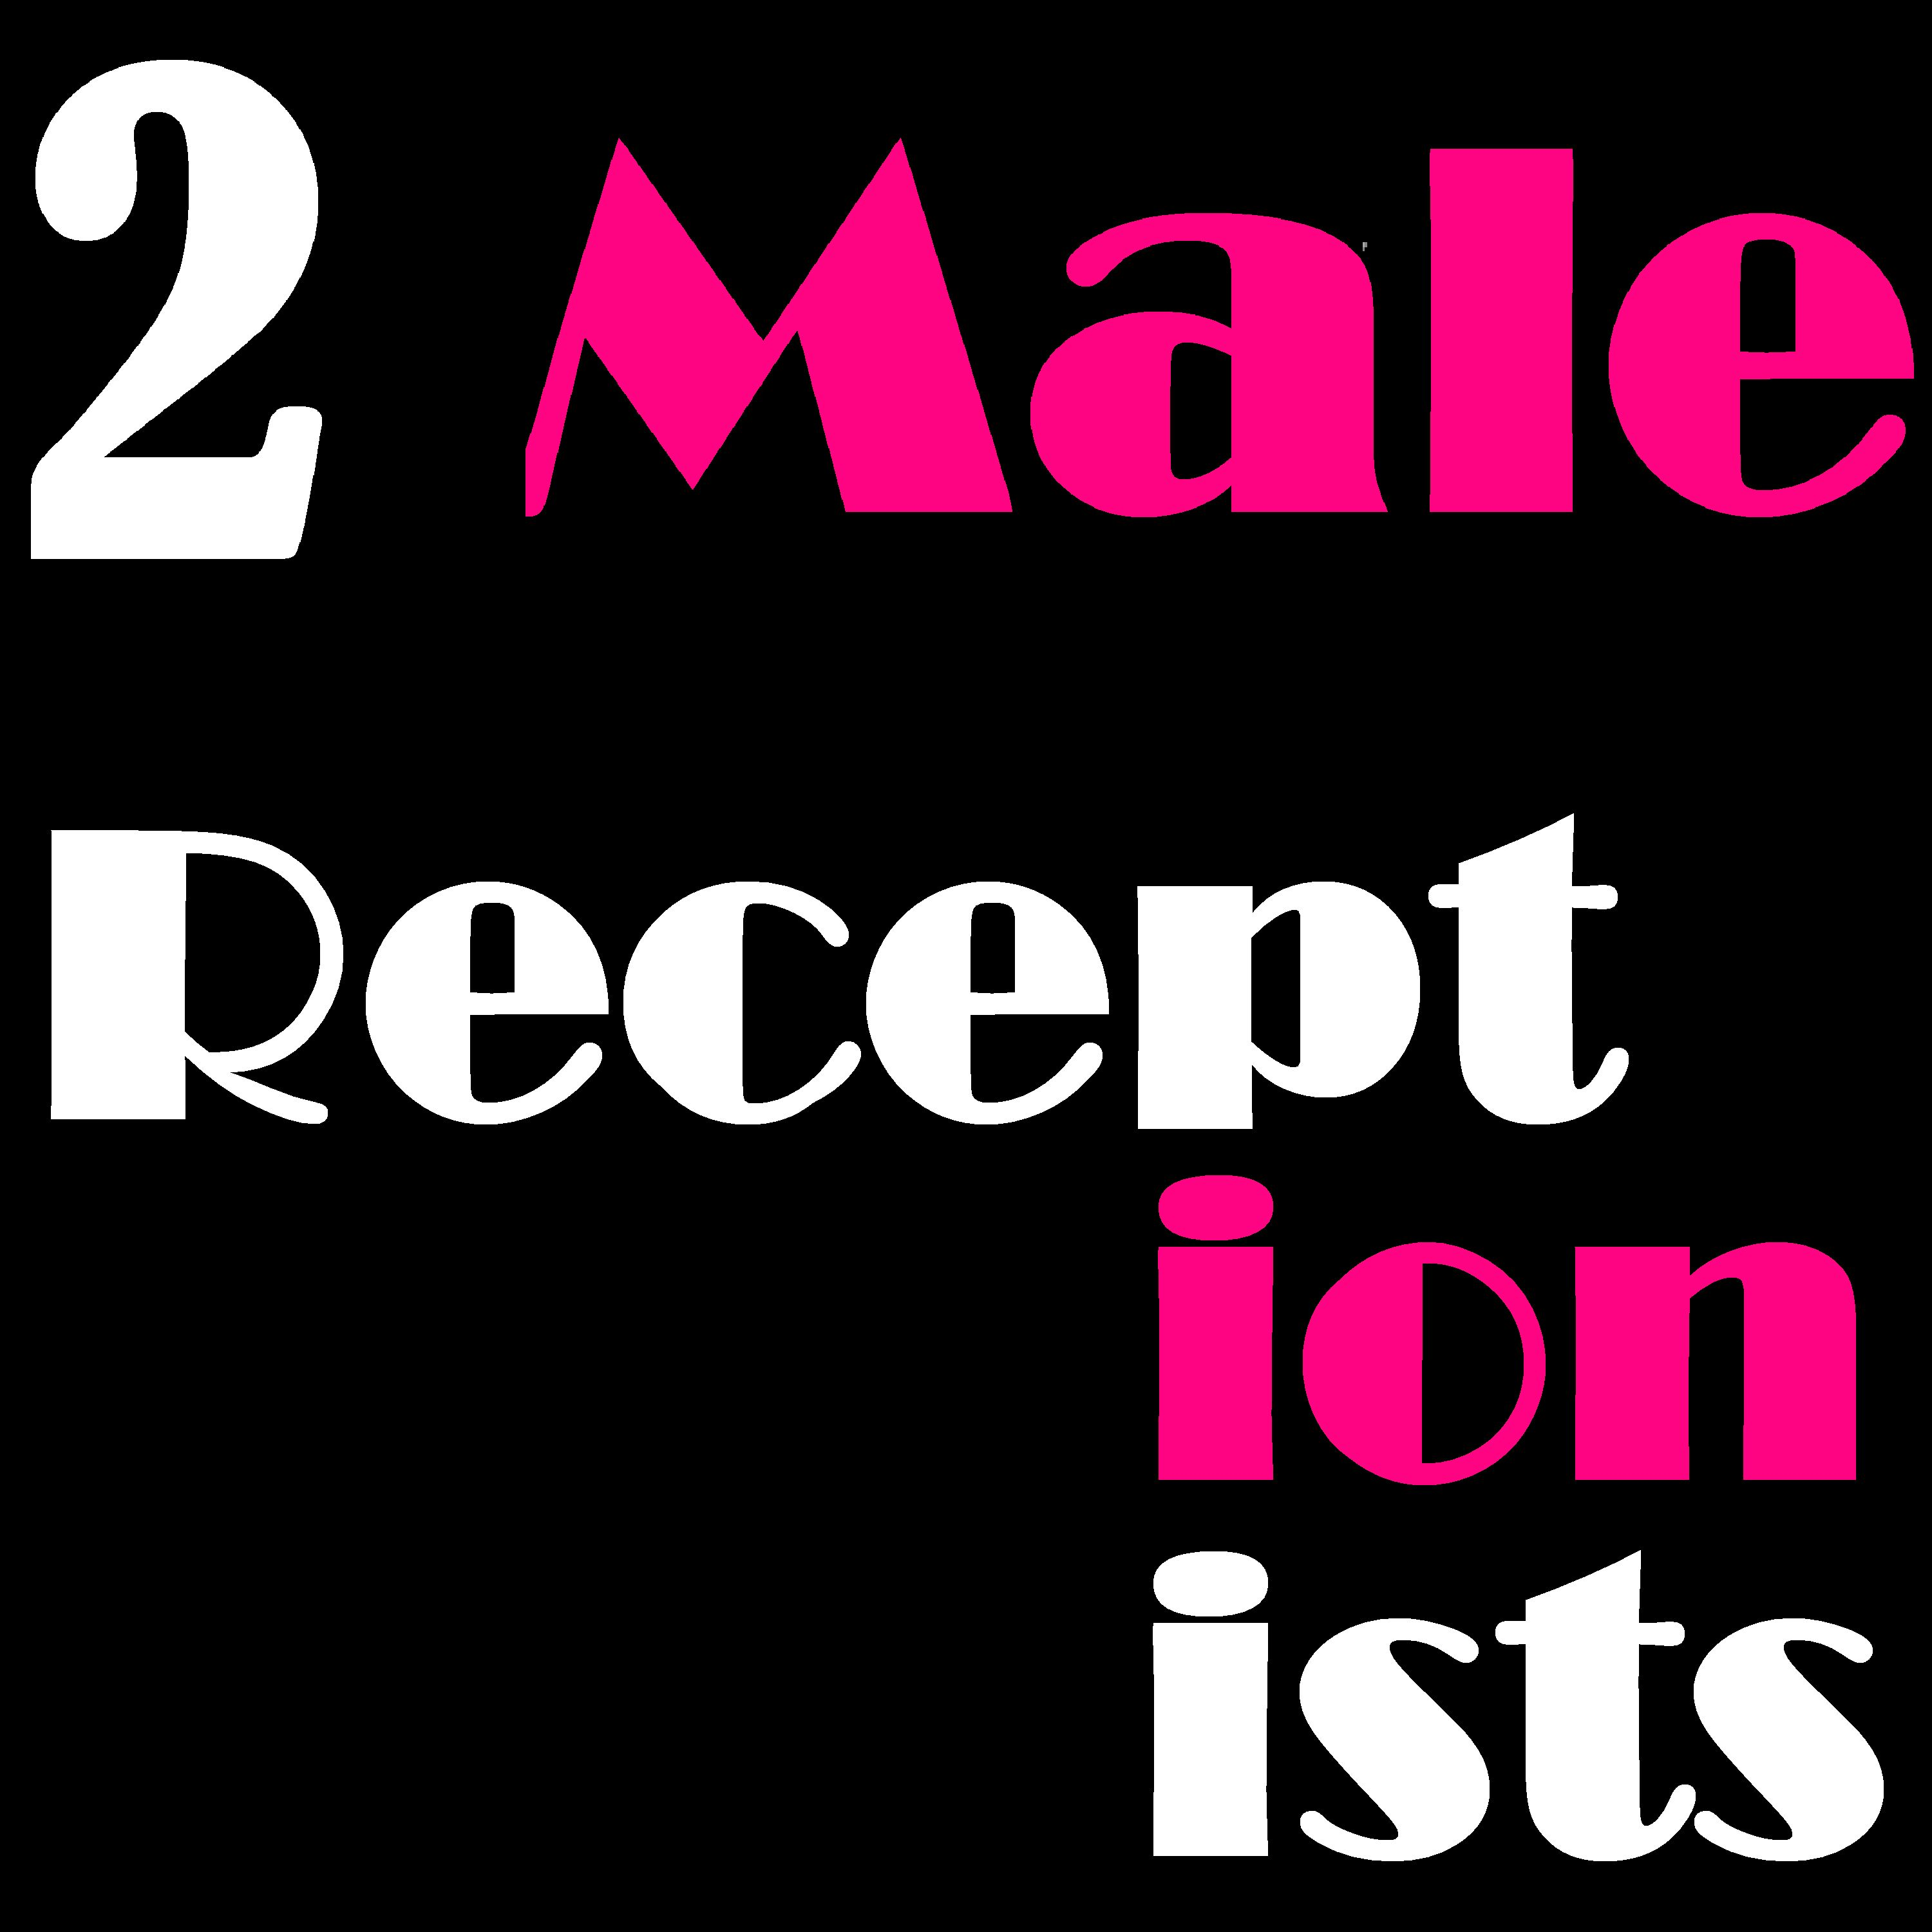 2 Male Receptionists